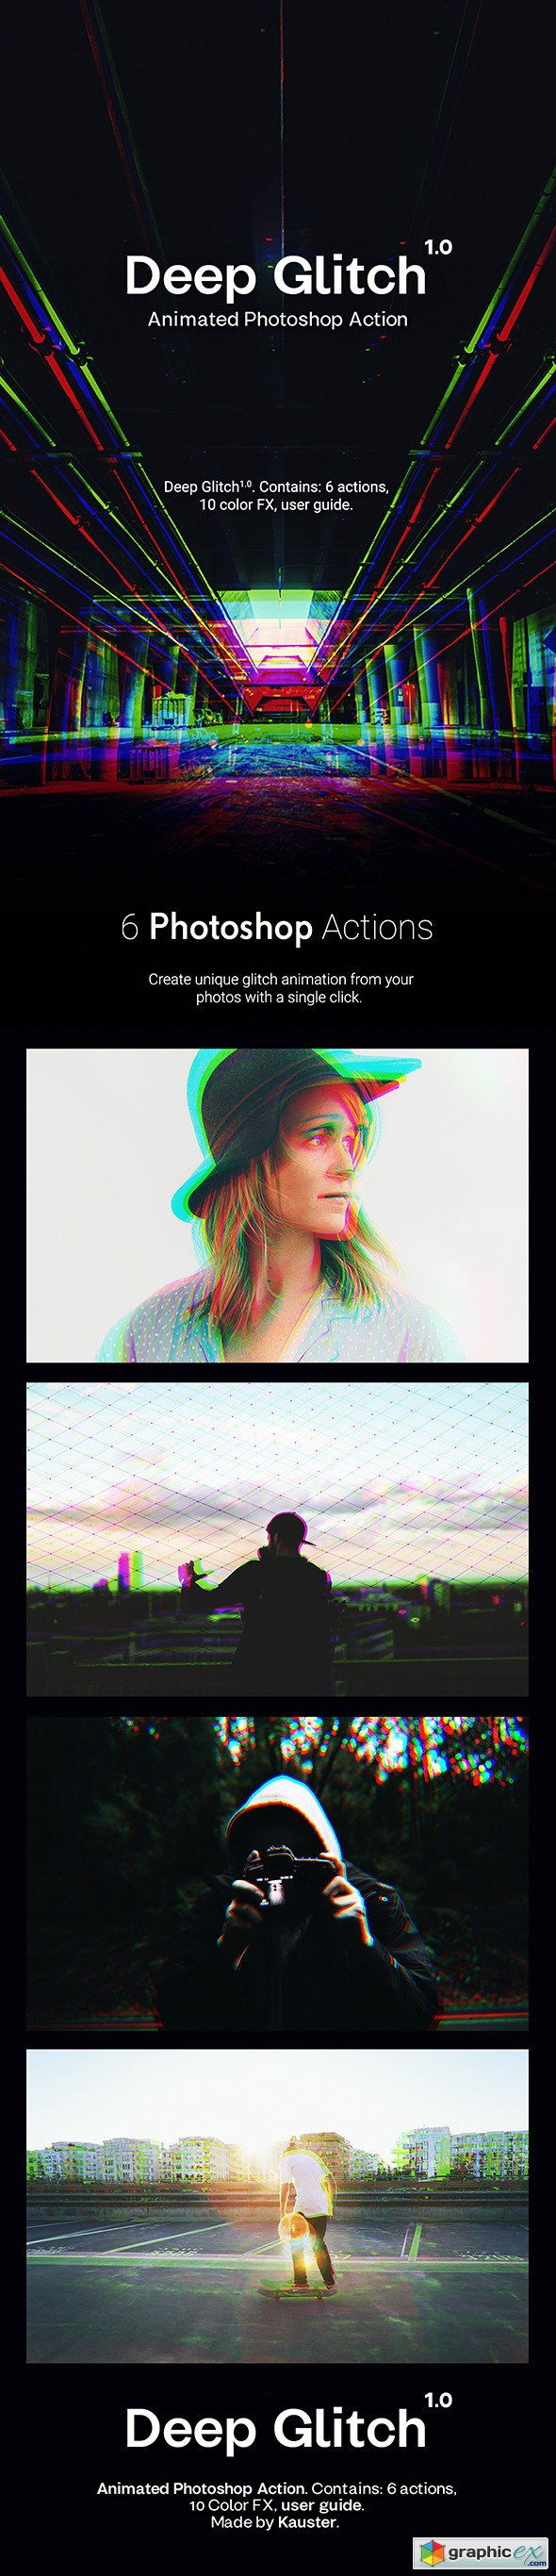 Deep Glitch - Animated Photoshop Action » Free Download